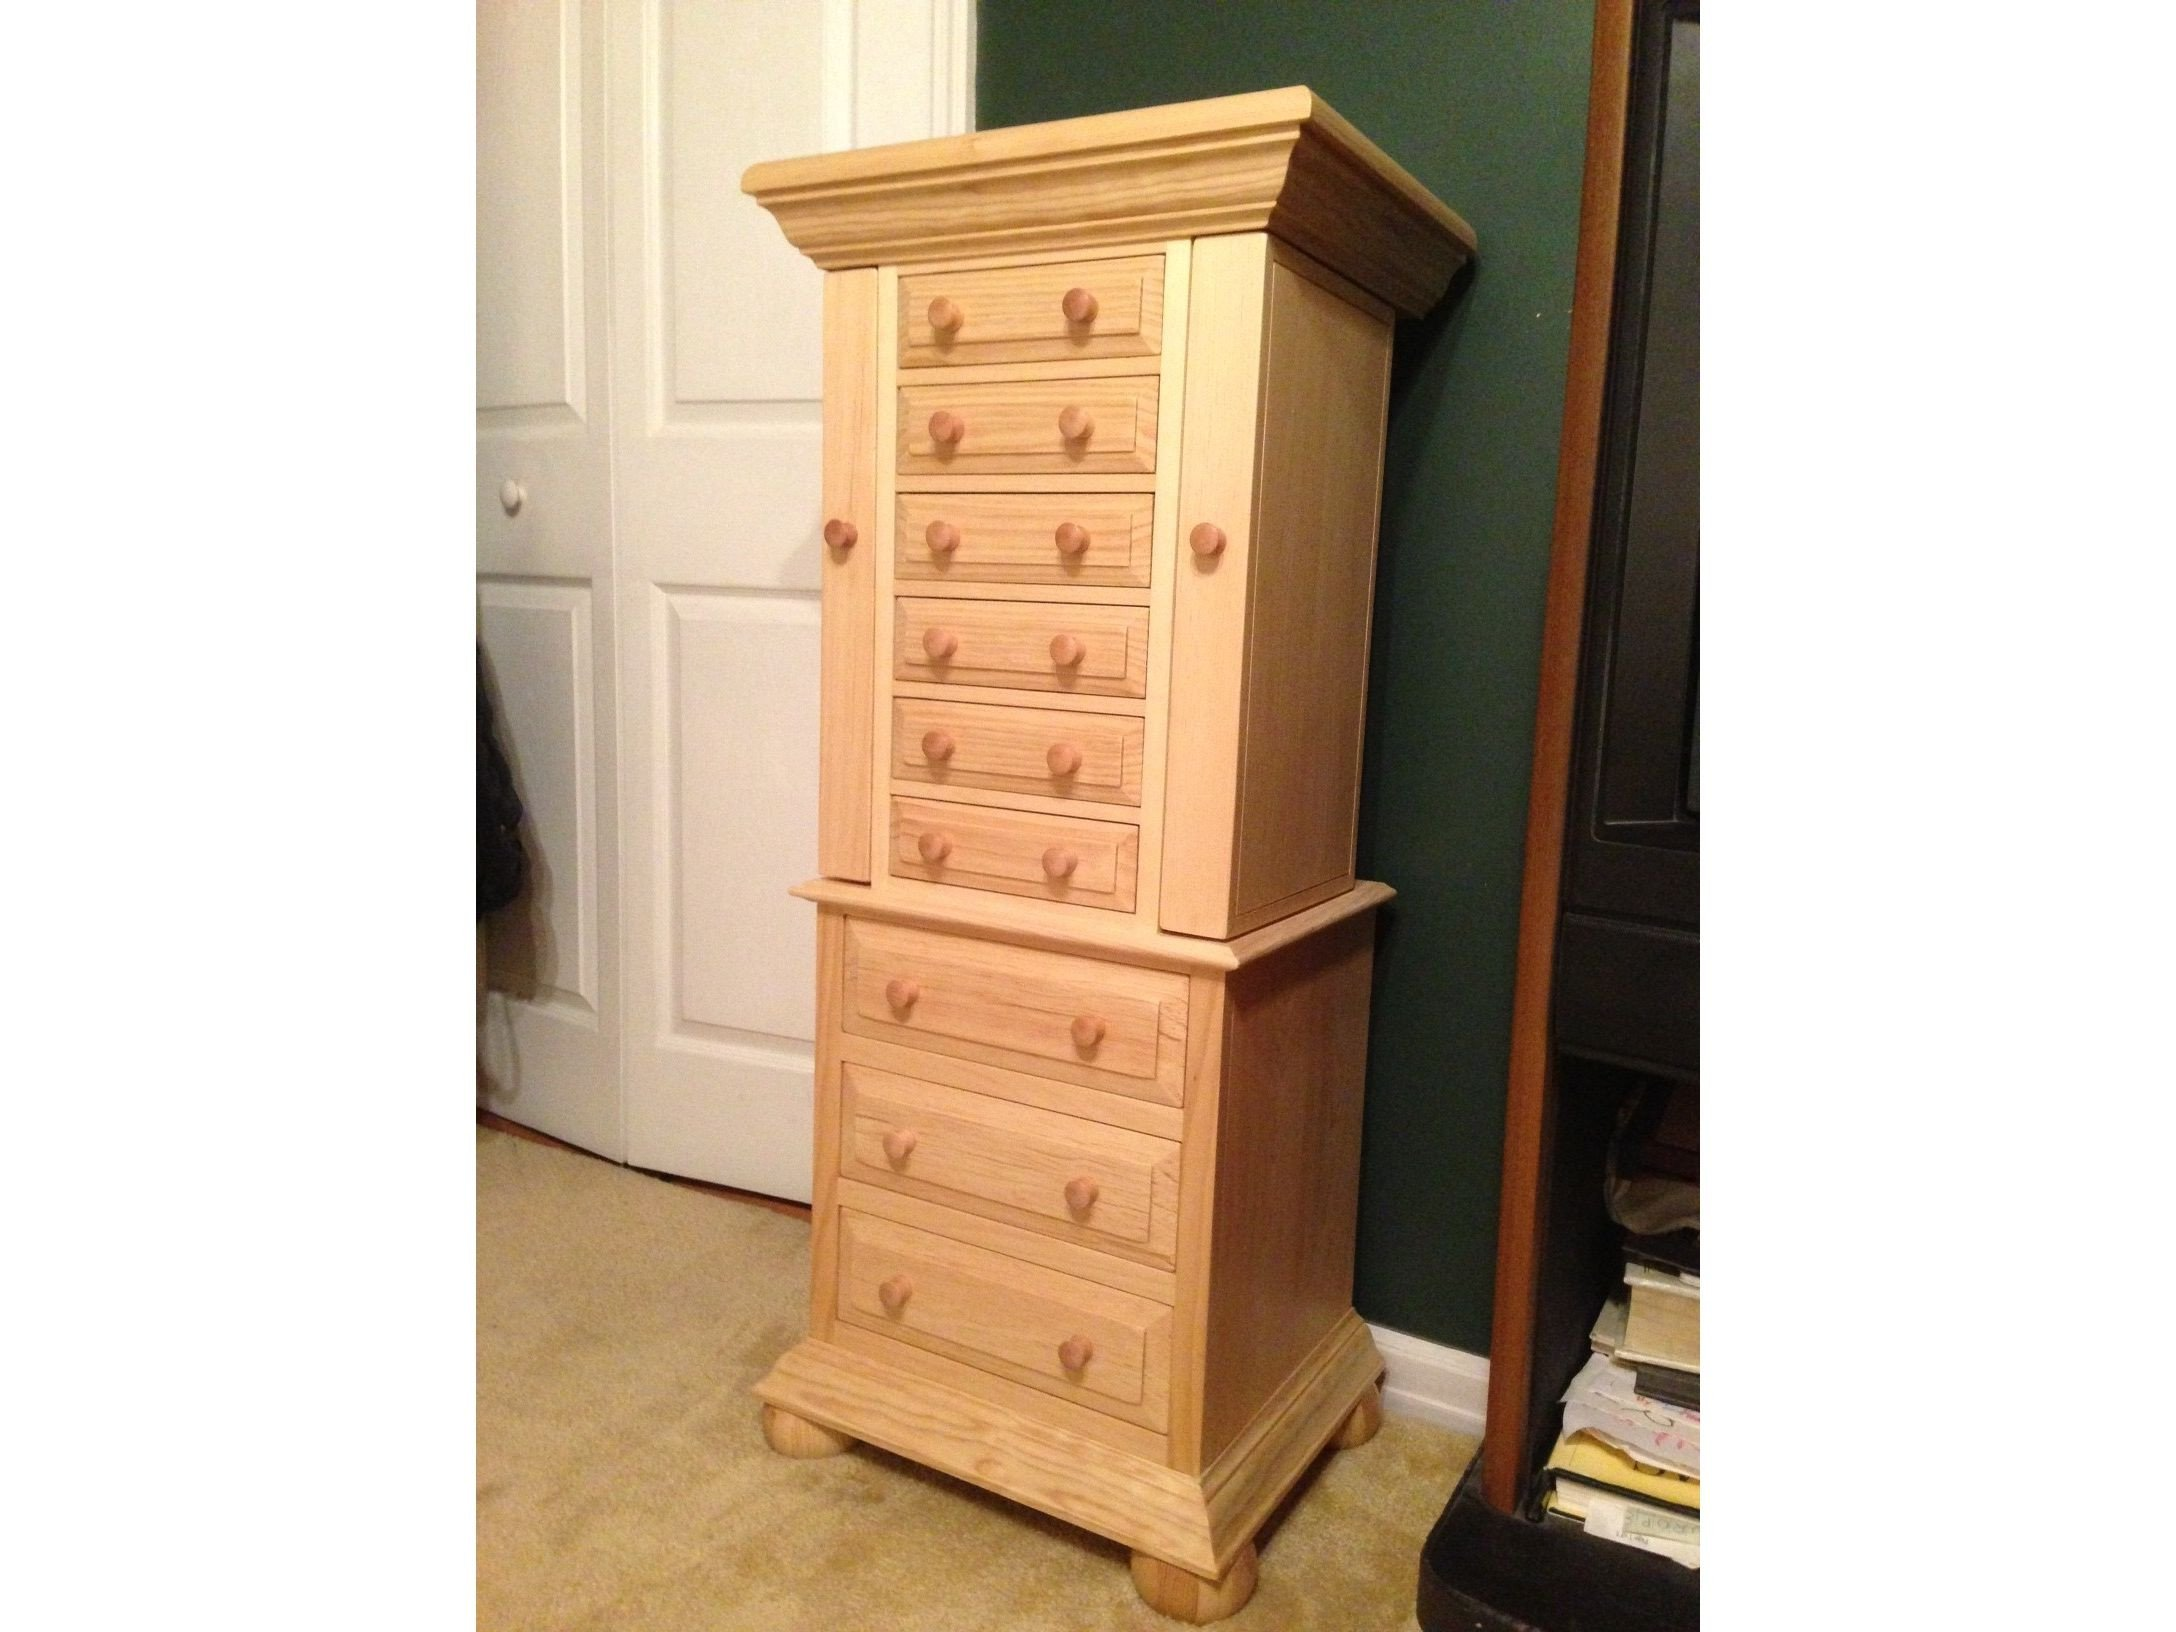 Broyhill King Bedroom Set Lovely Jewelry Armoire to Match Knotty Pine Broyhill Bedroom Set